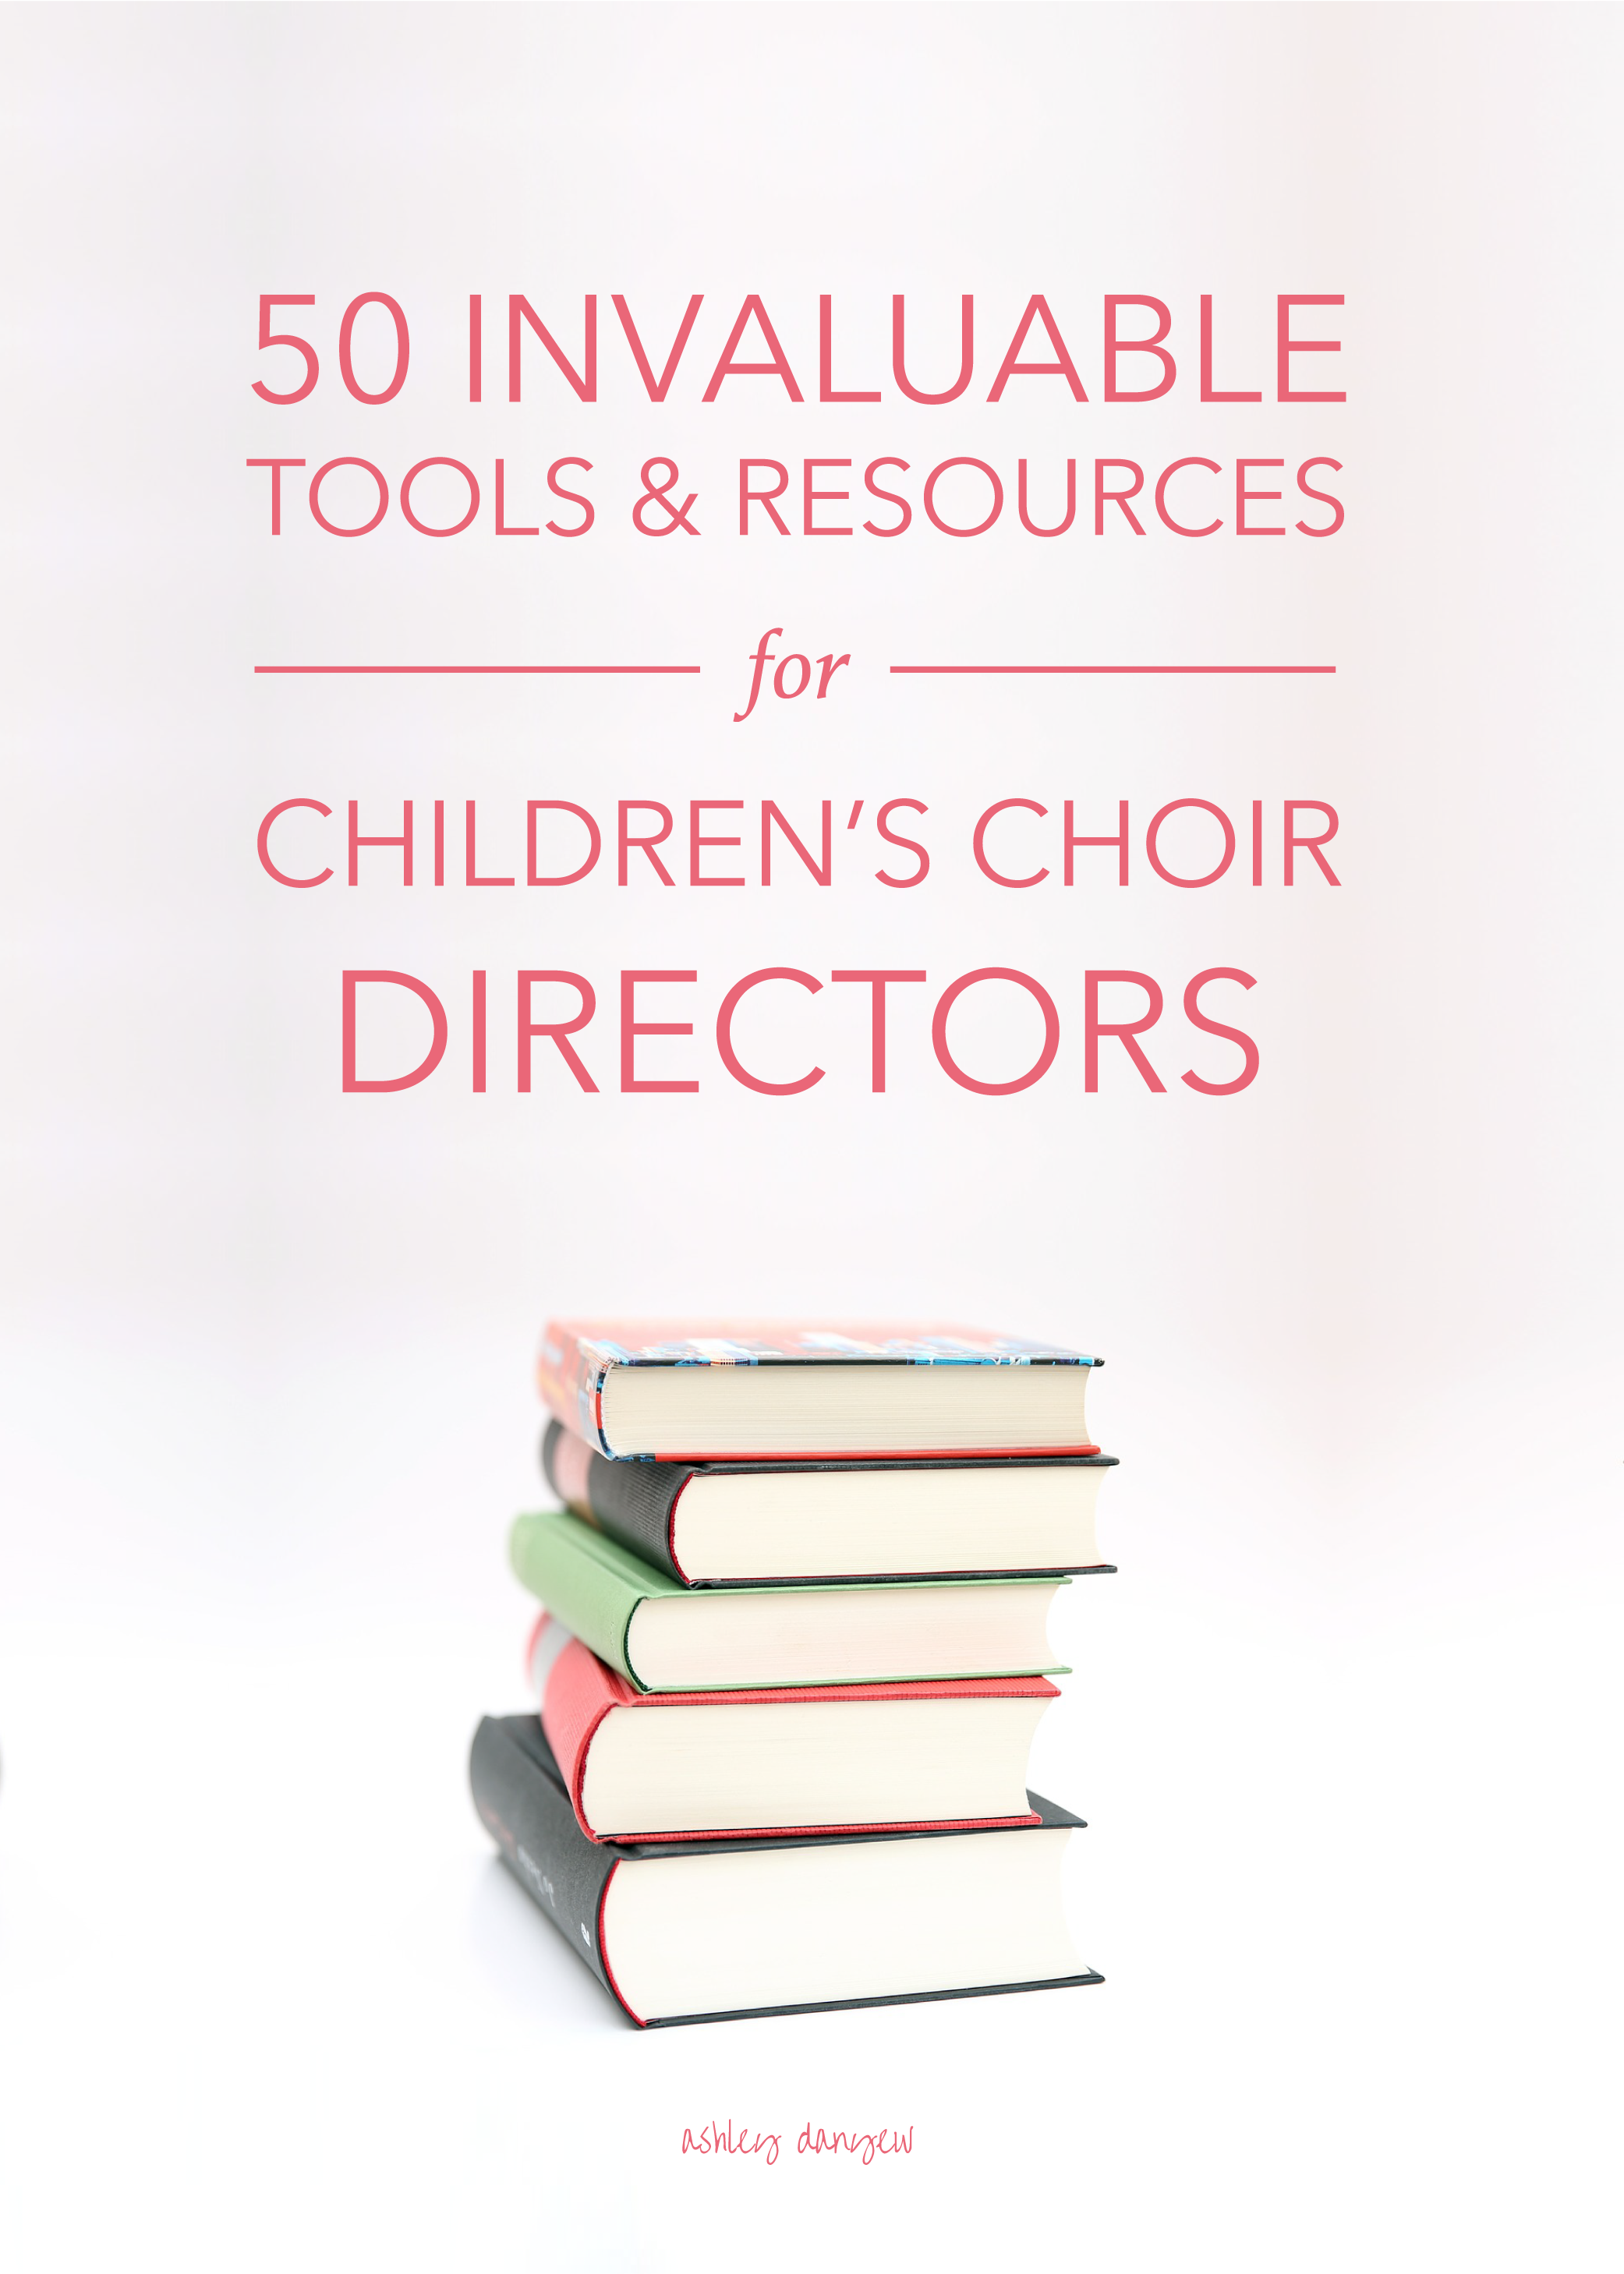 50 Invaluable Tools and Resources for Children's Choir Directors-01.png